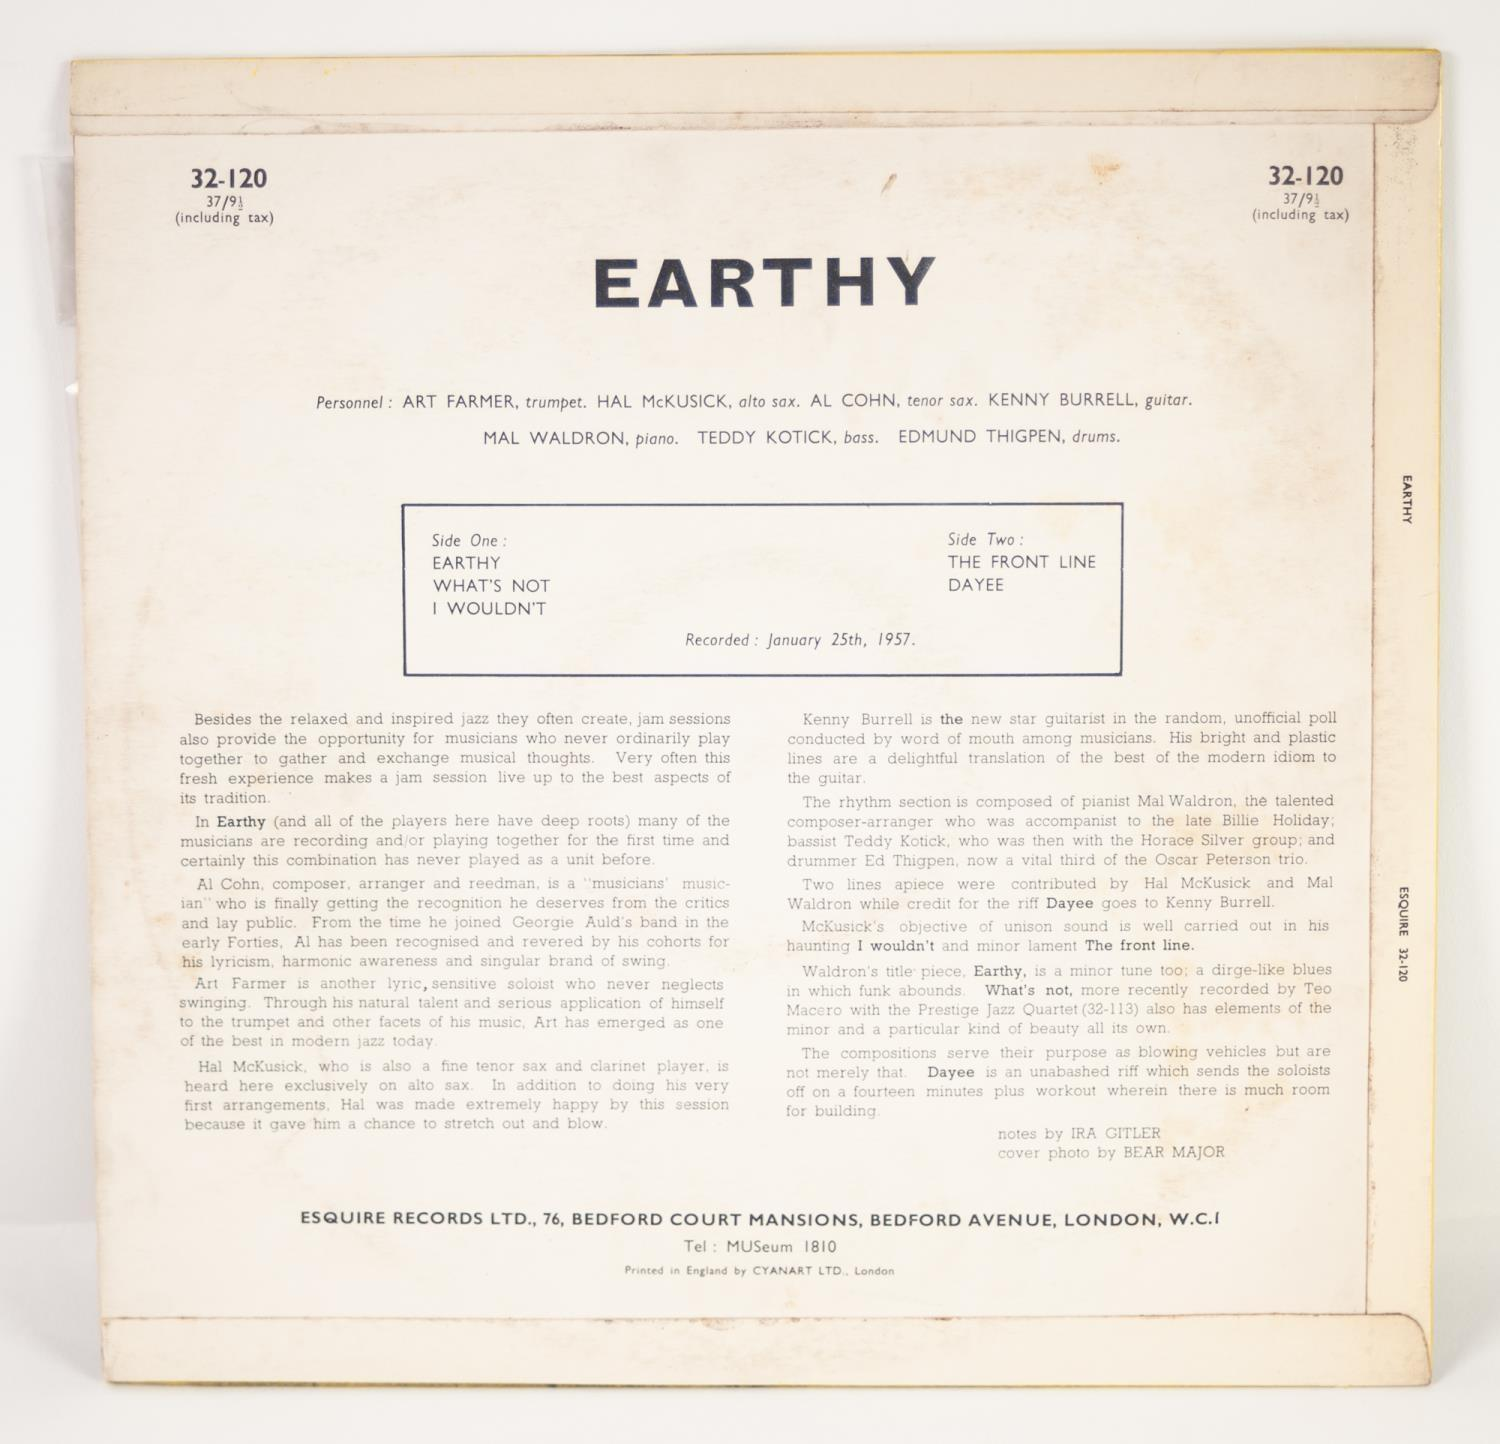 JAZZ, VINYL RECORDS- B IS FOR KENNY BURRELL-EARTHY (Prestige All Stars), Esquire (32-120). - Image 2 of 4